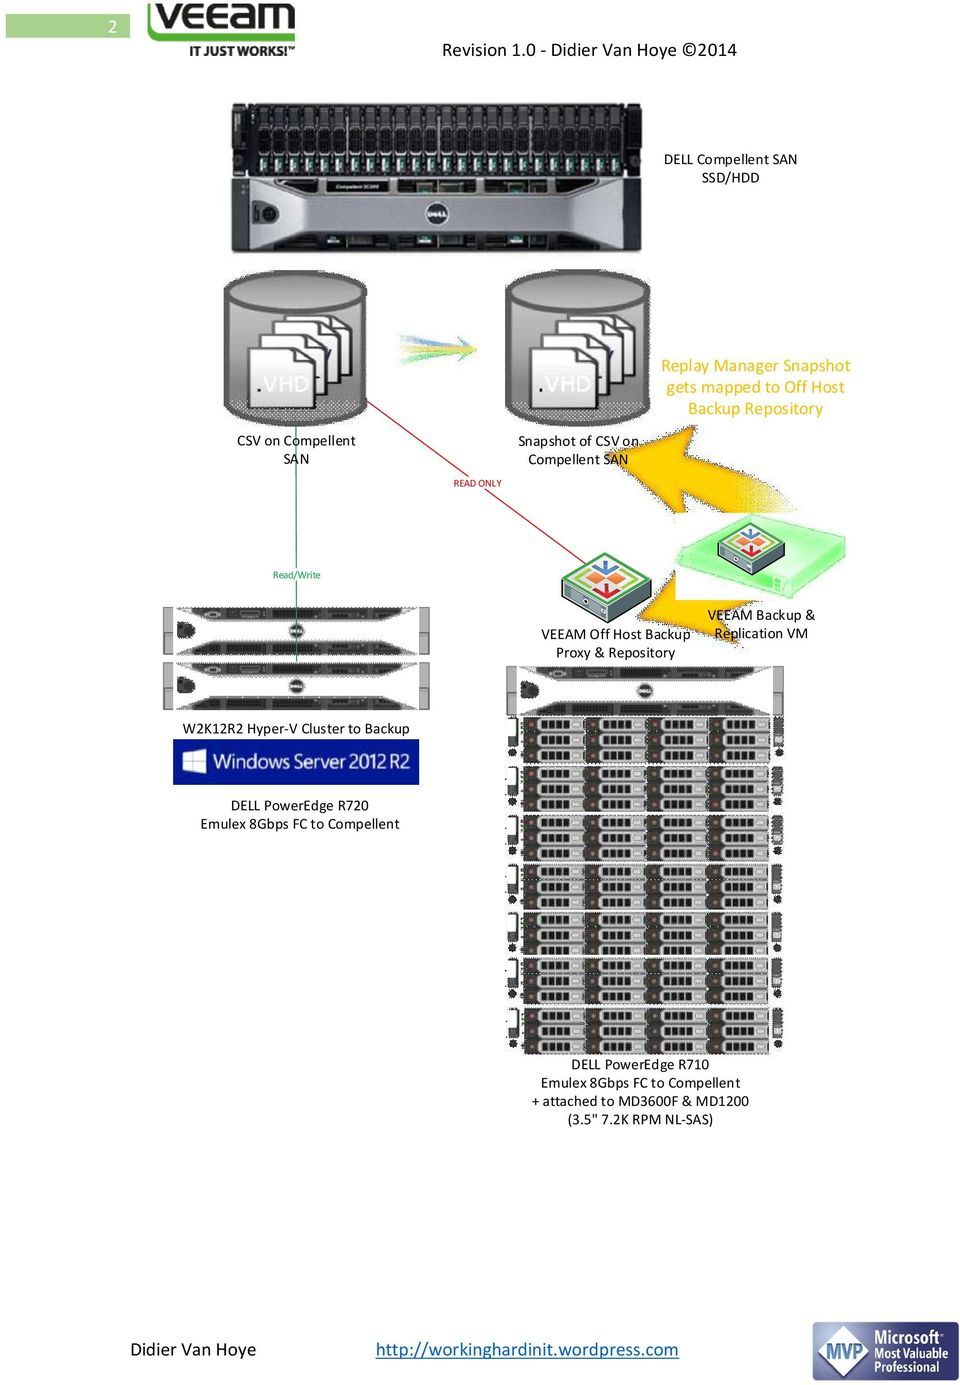 Repository VEEAM Backup & Replication VM W2K12R2 Hyper-V Cluster to Backup DELL PowerEdge R720 Emulex 8Gbps